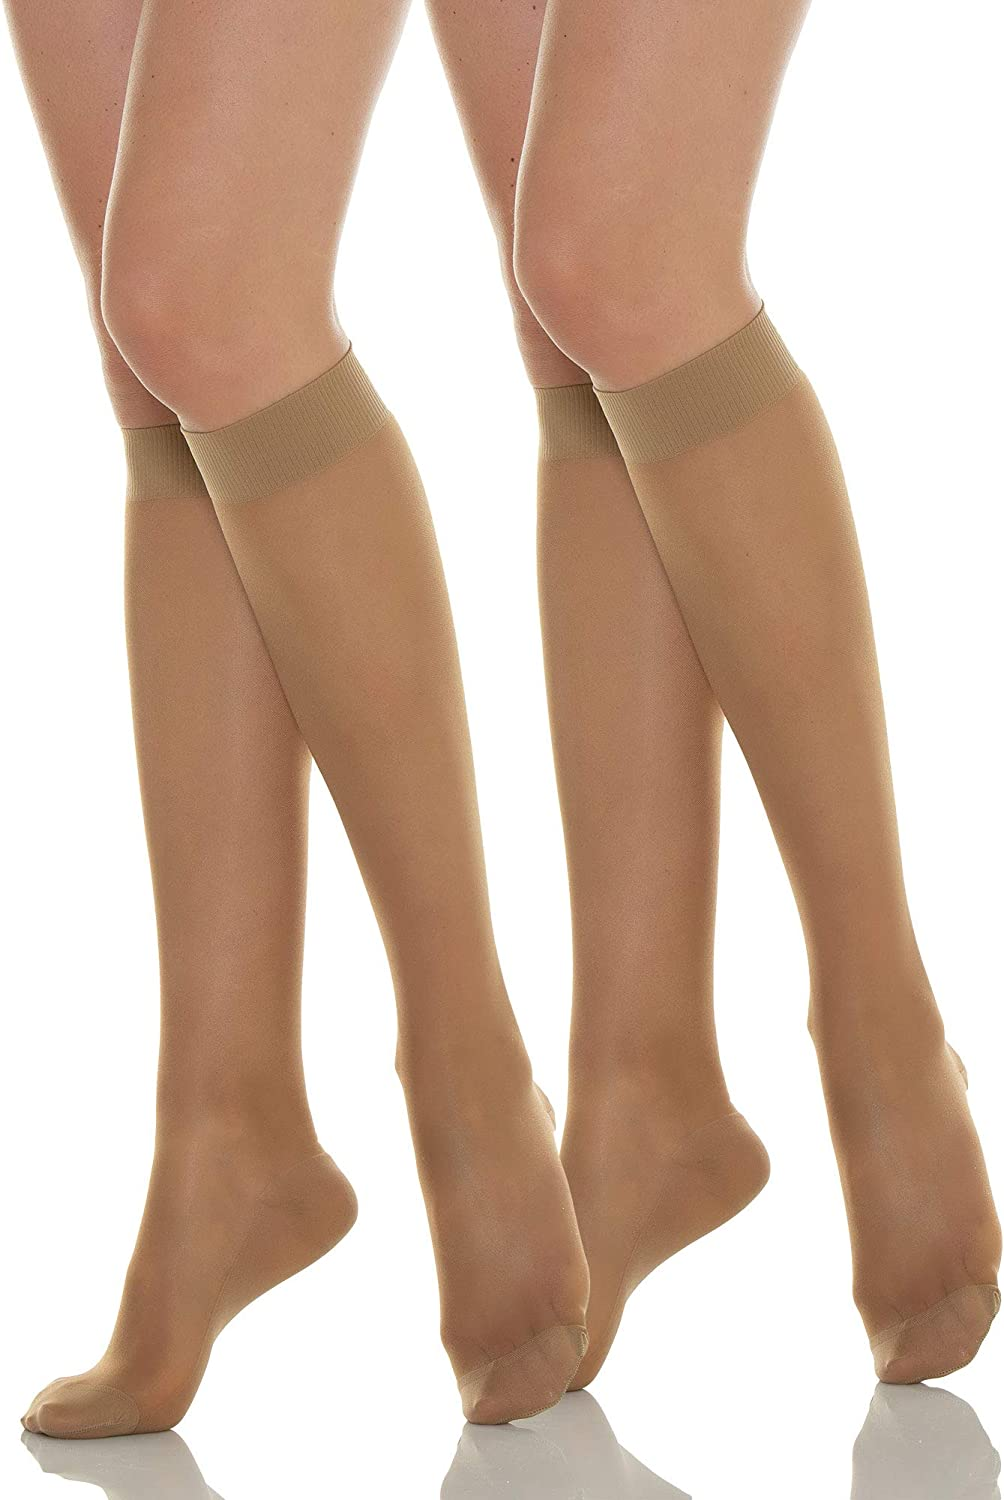 Relaxsan New color Spring new work Basic 850 2 Pairs - moderate Sz.2 support kn Beige